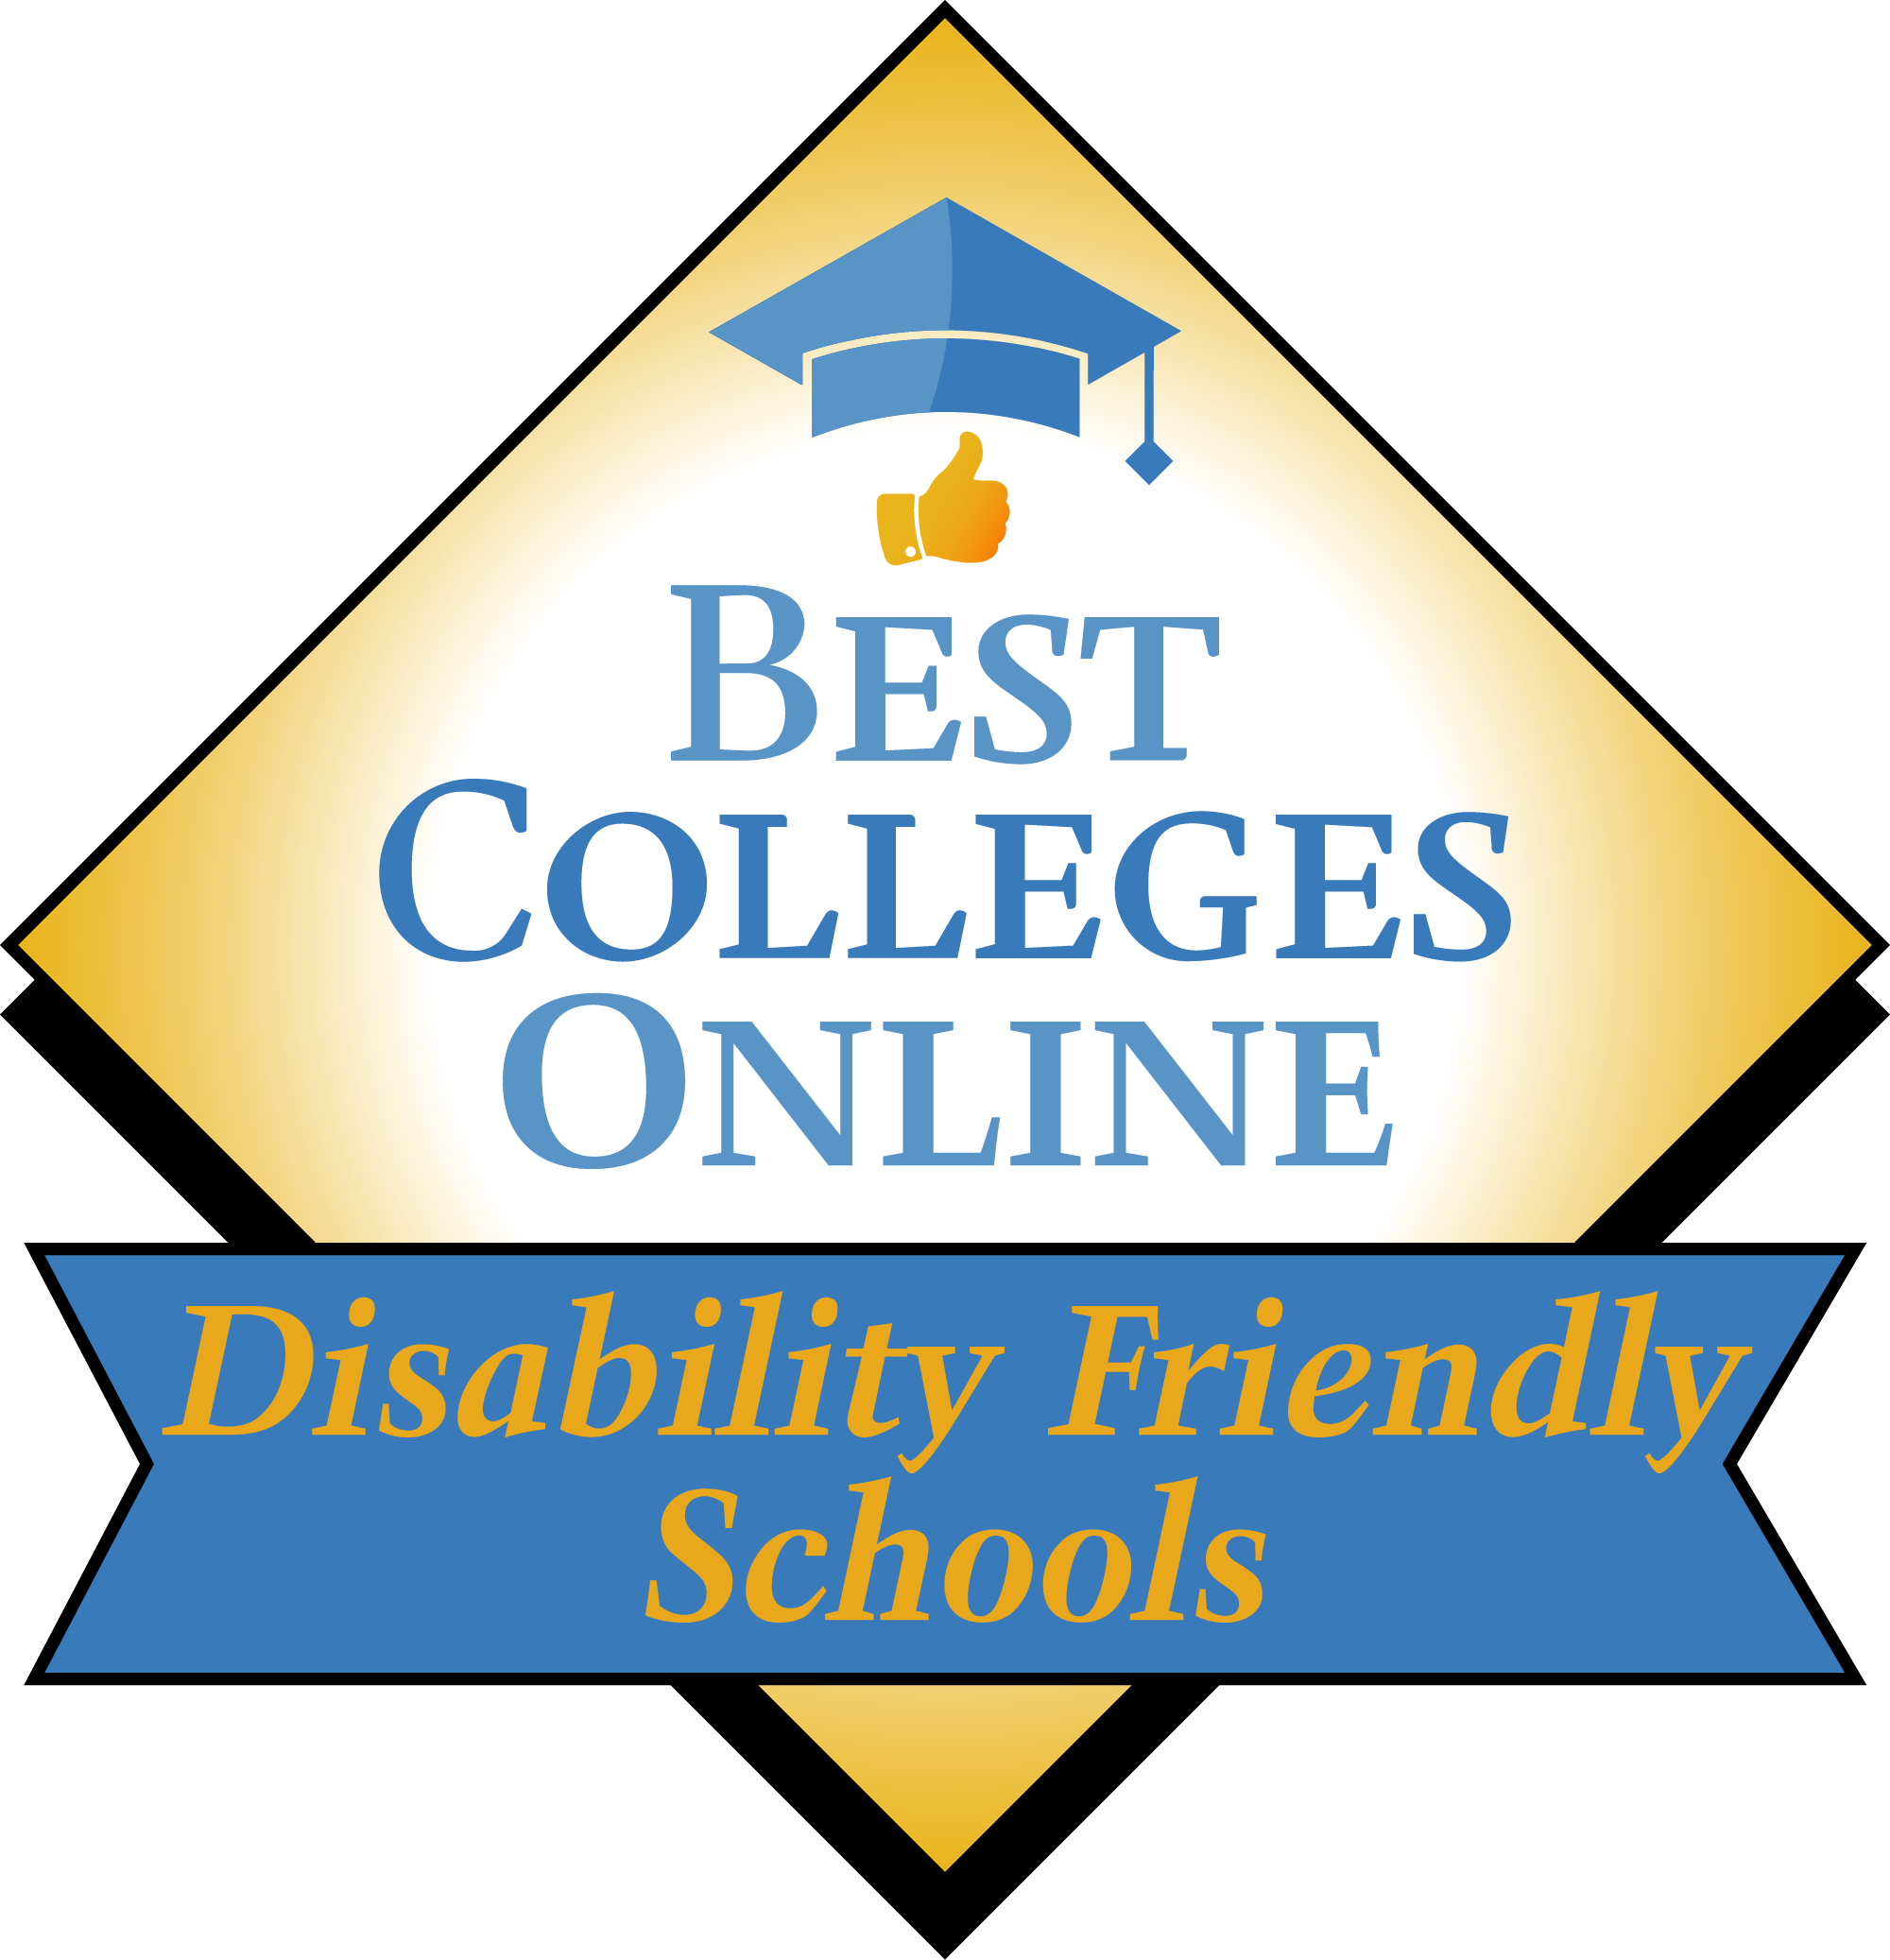 BCO-Disability Friendly Schools